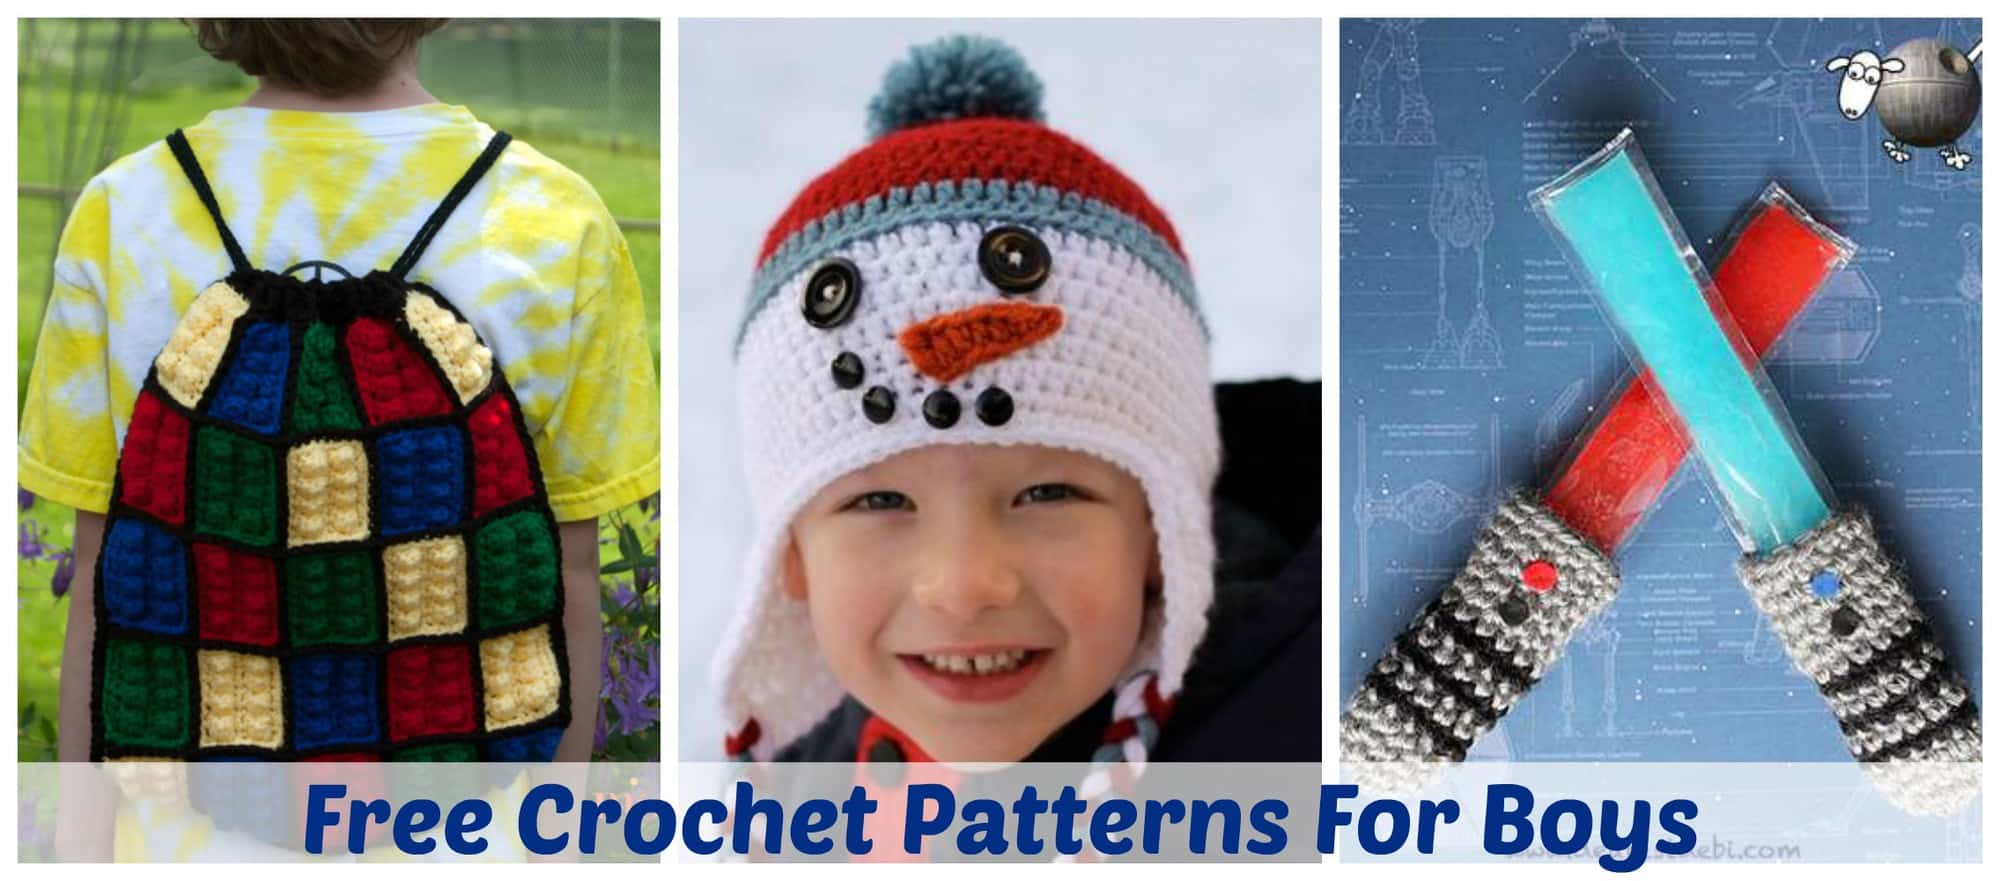 The HUGE list of Free Crochet Patterns For Boys